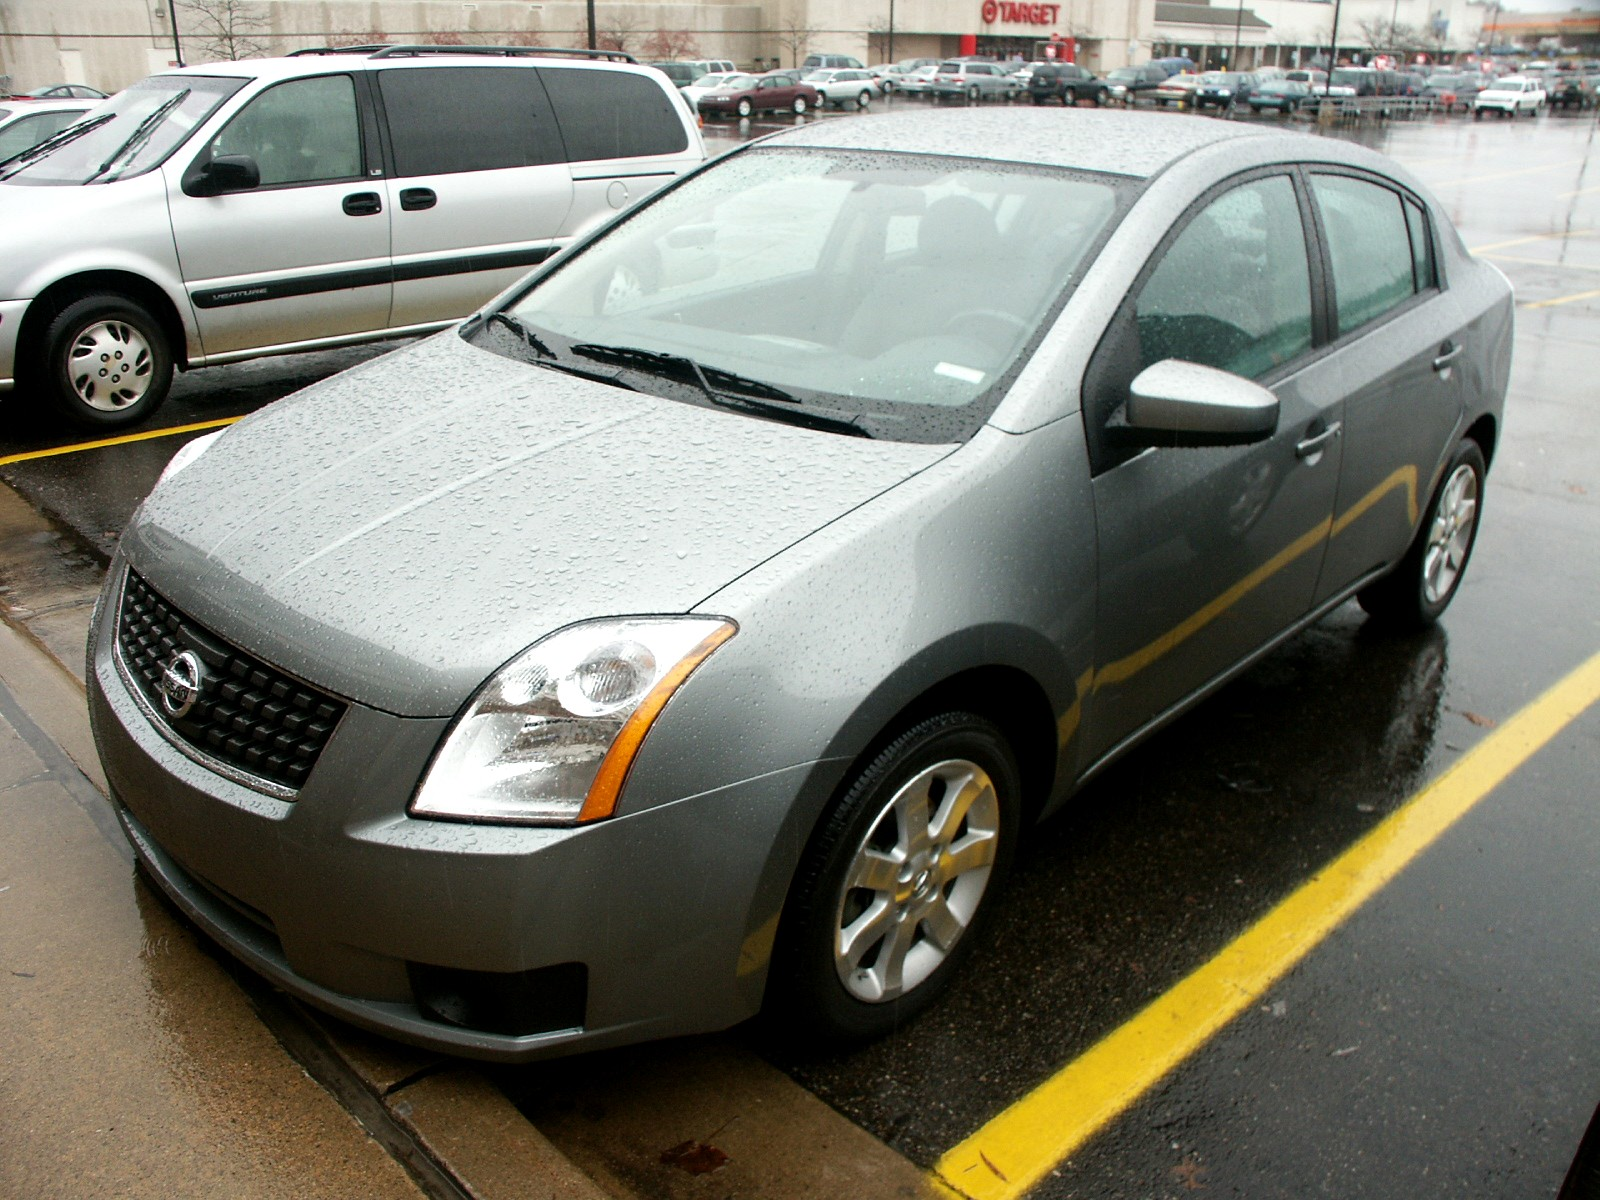 2007 Nissan Sentra 2.0S Review